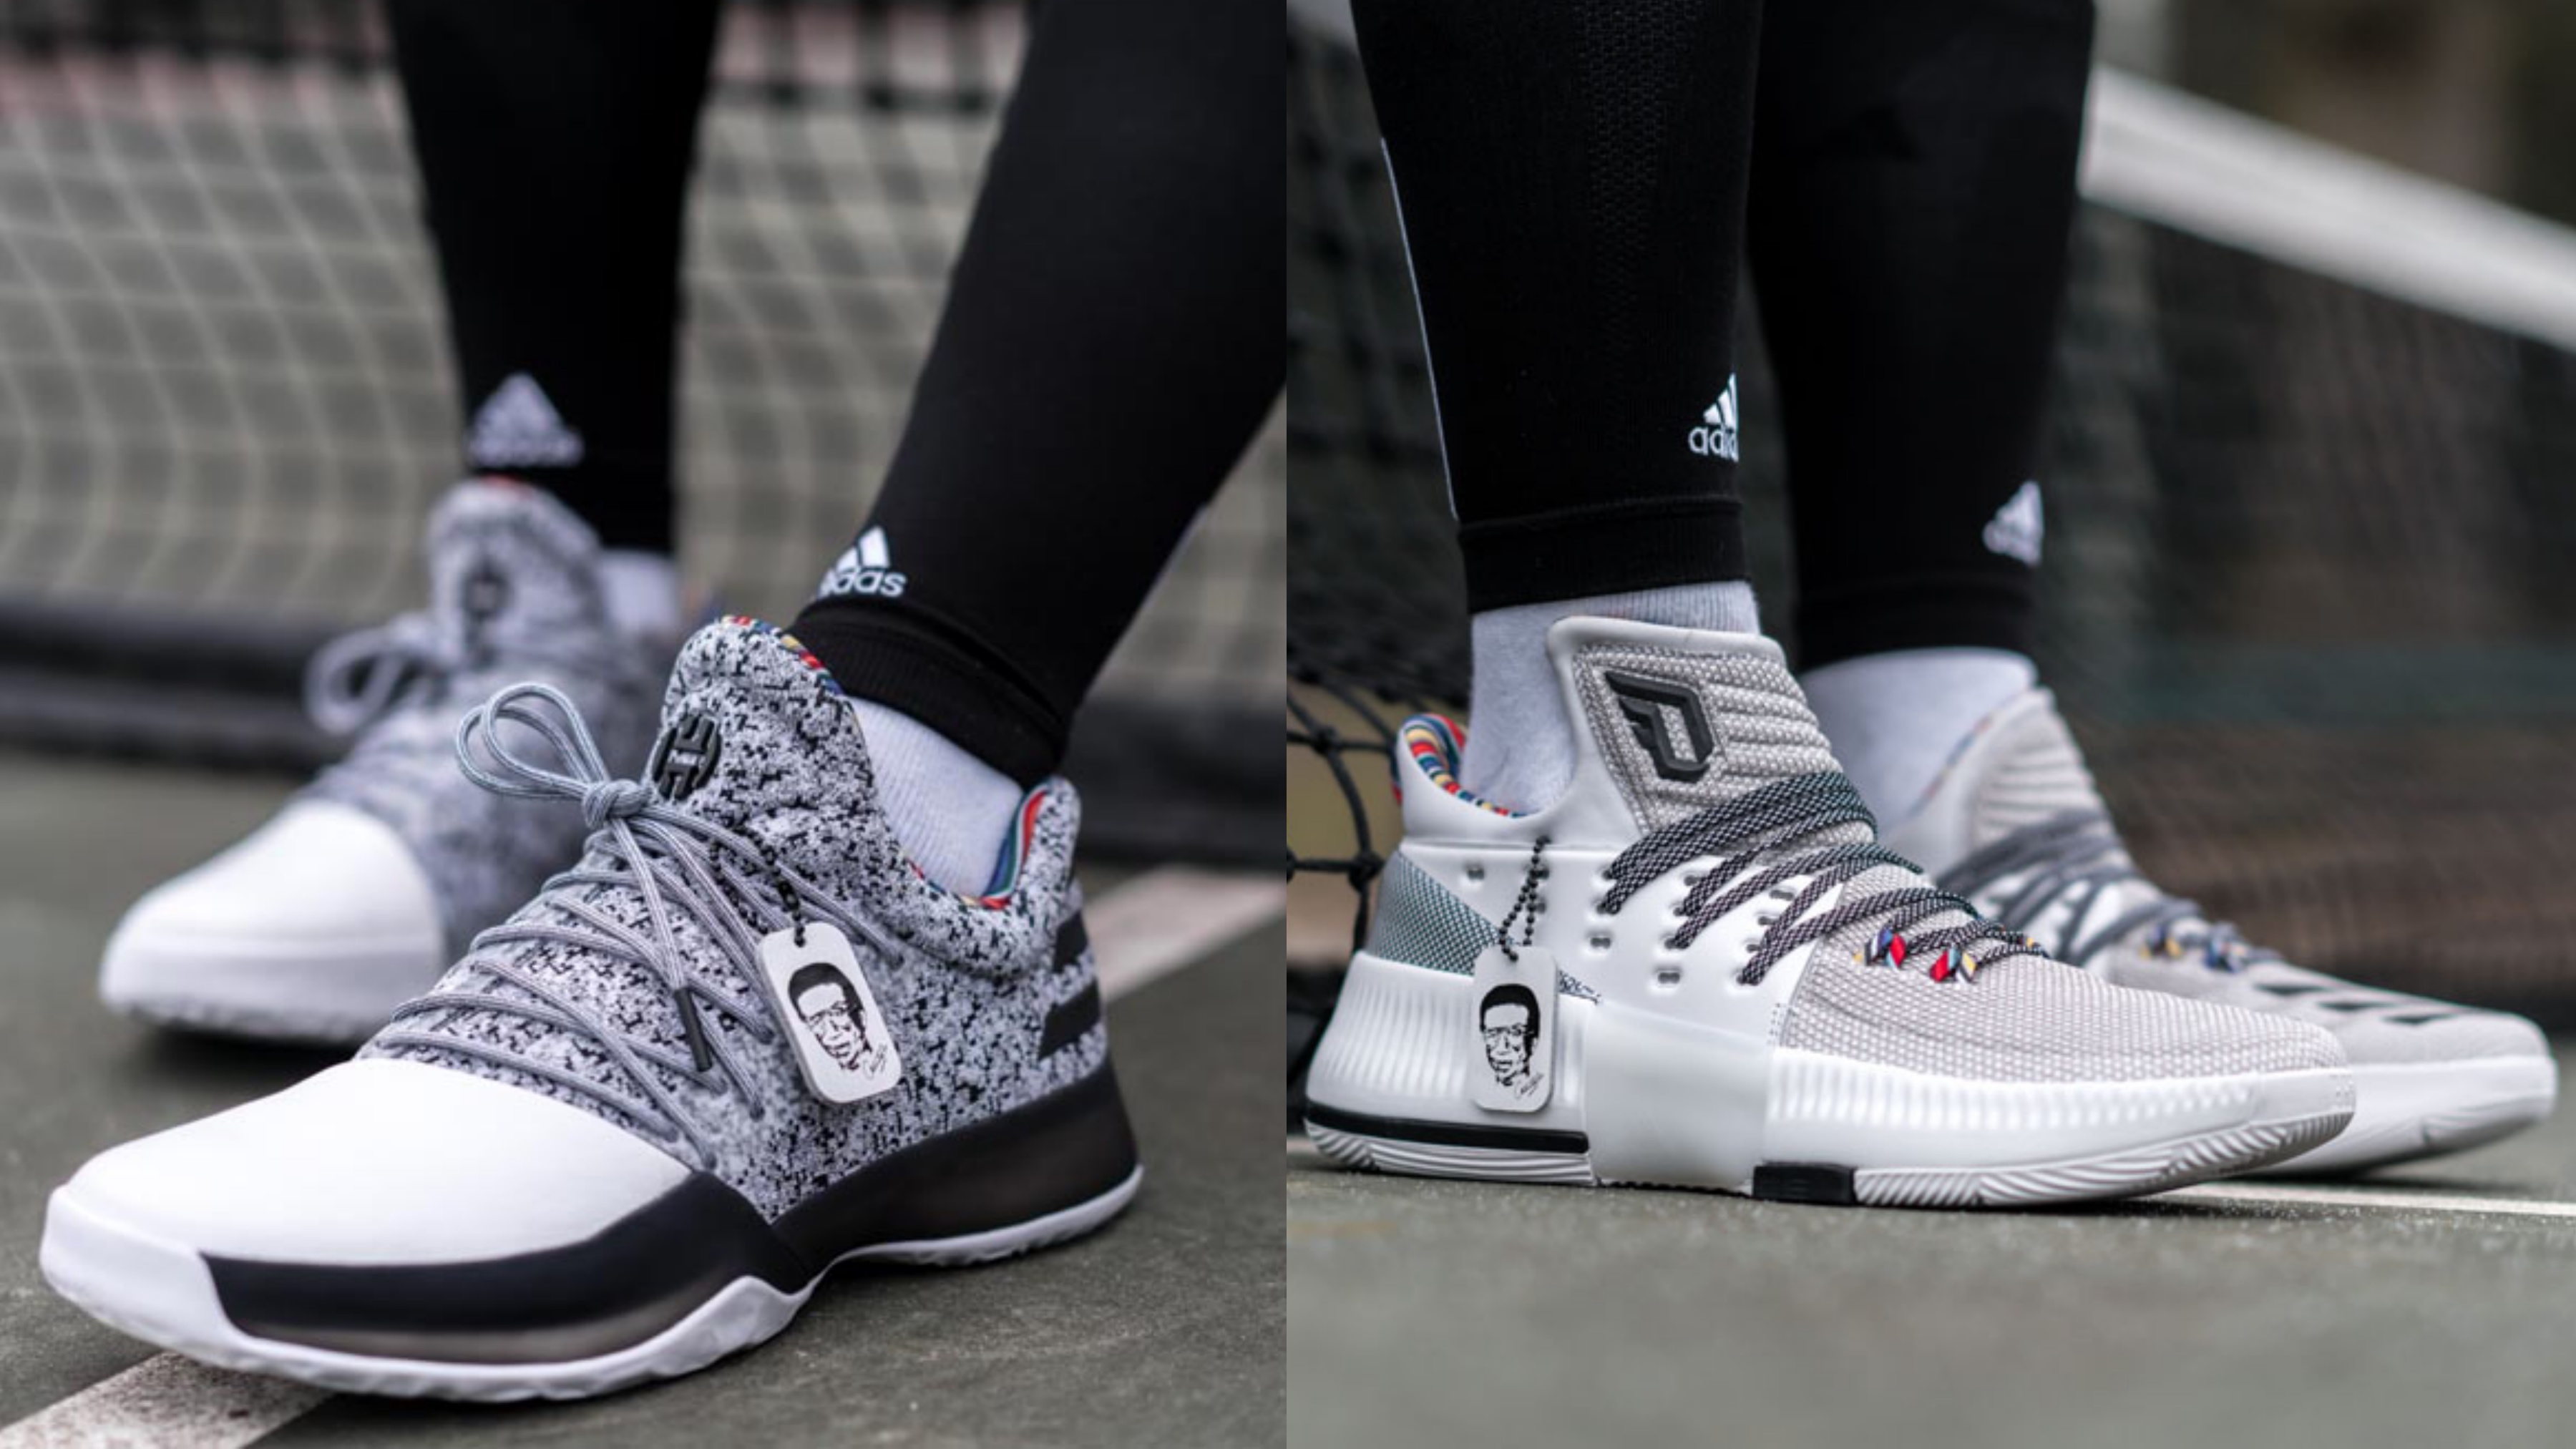 ba241c690d3f The adidas Basketball Black History Month 2017 Collection is ...